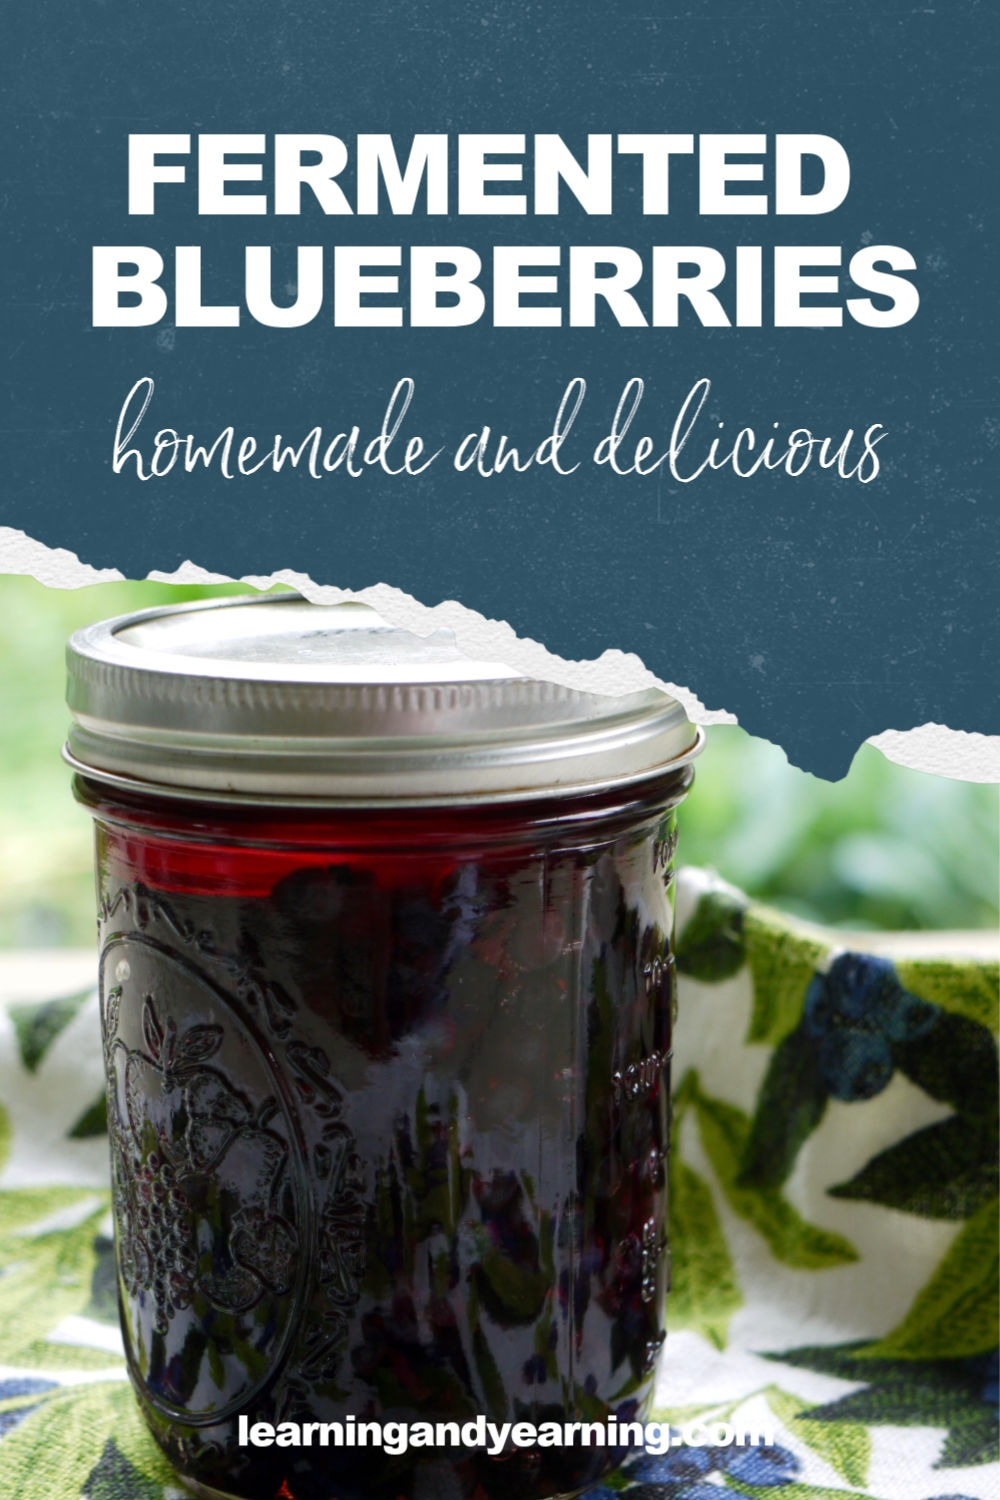 Homemade lacto-fermented blueberries!